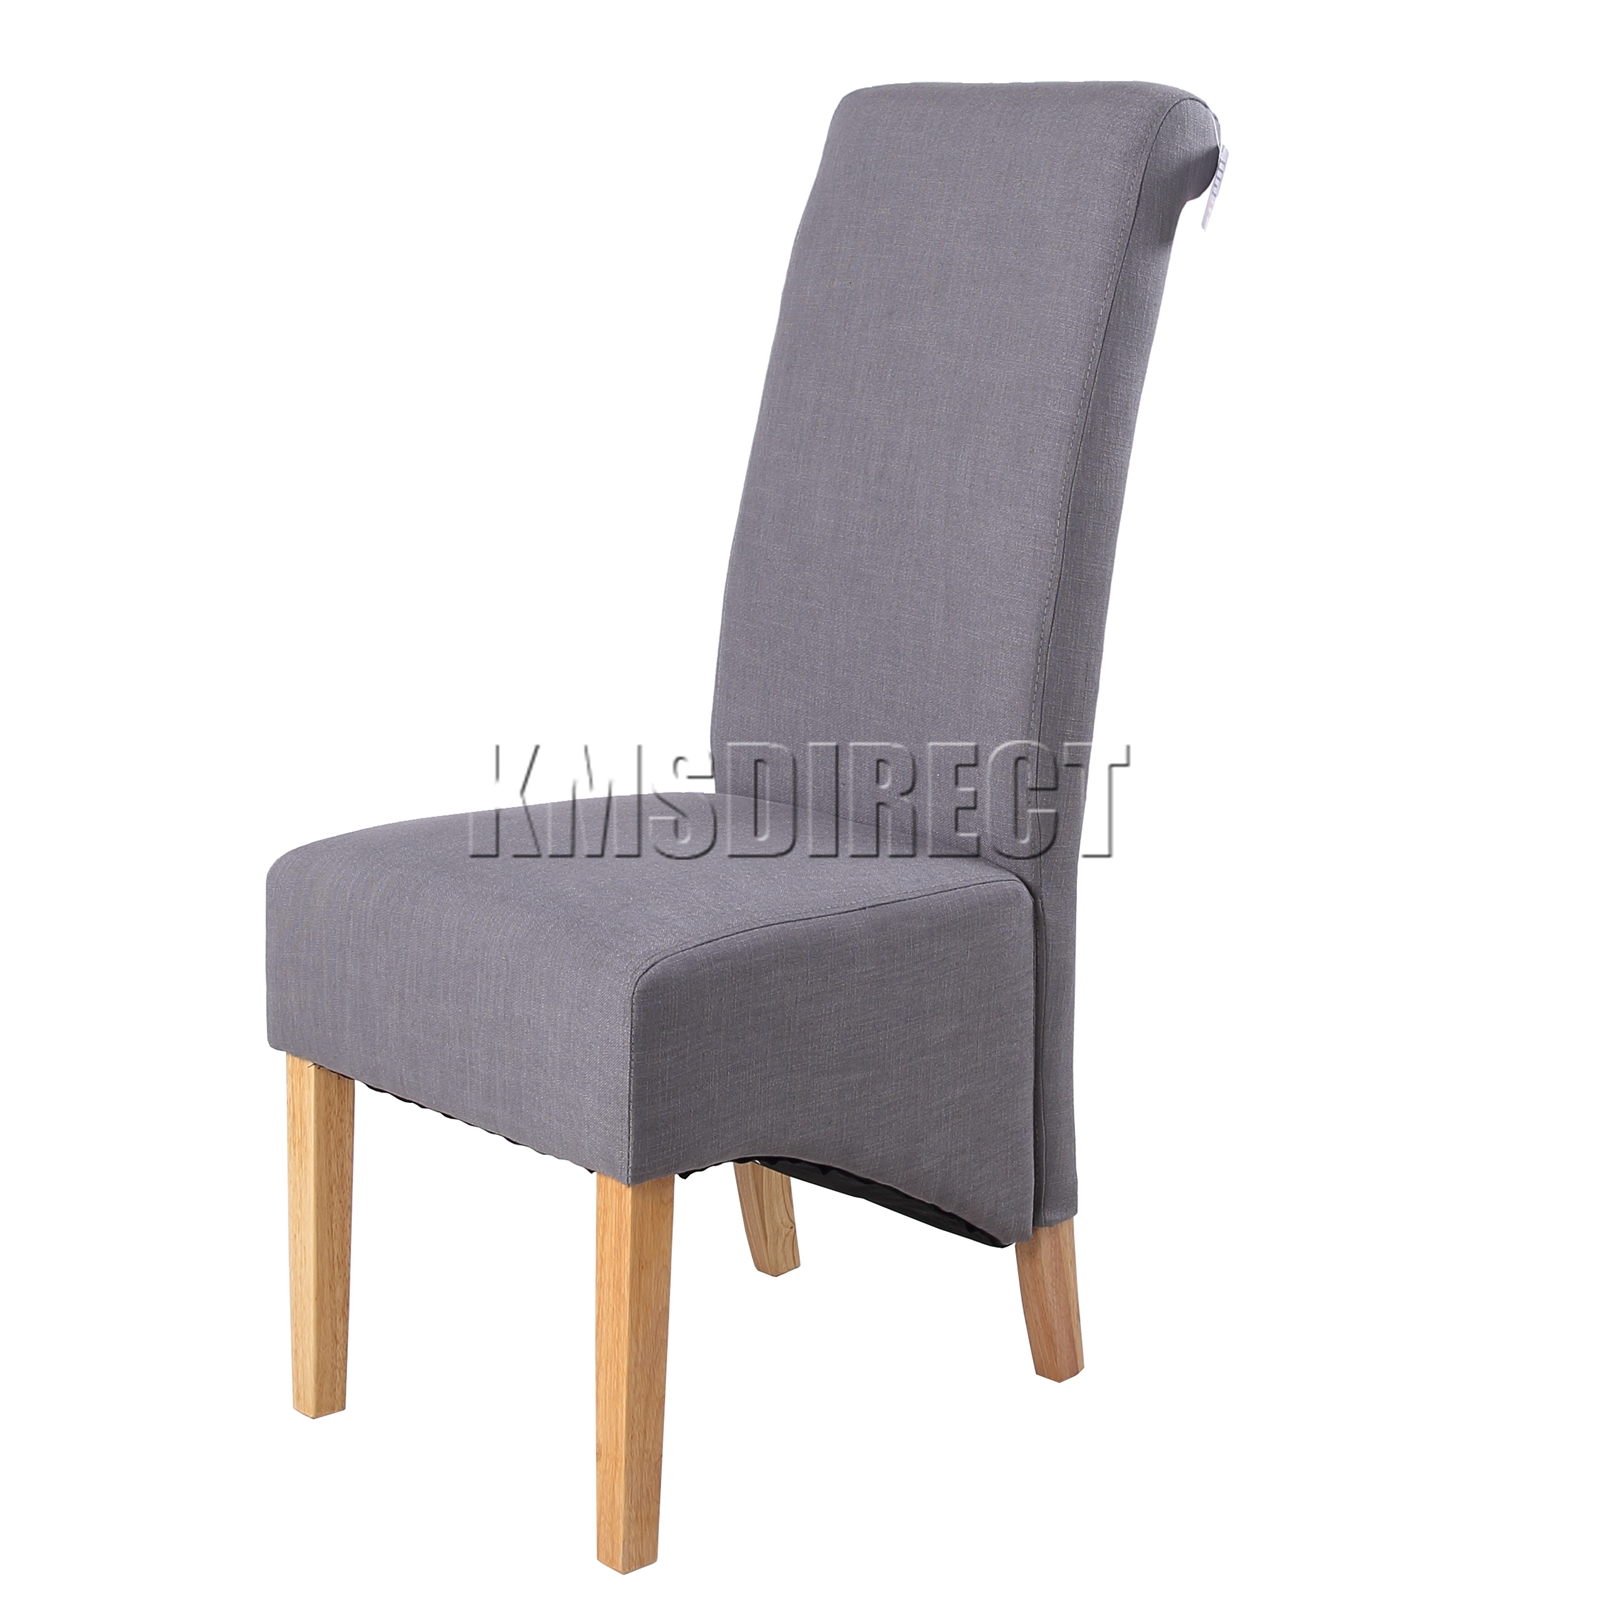 grey linen fabric dining chairs scroll high back springed seat new x2